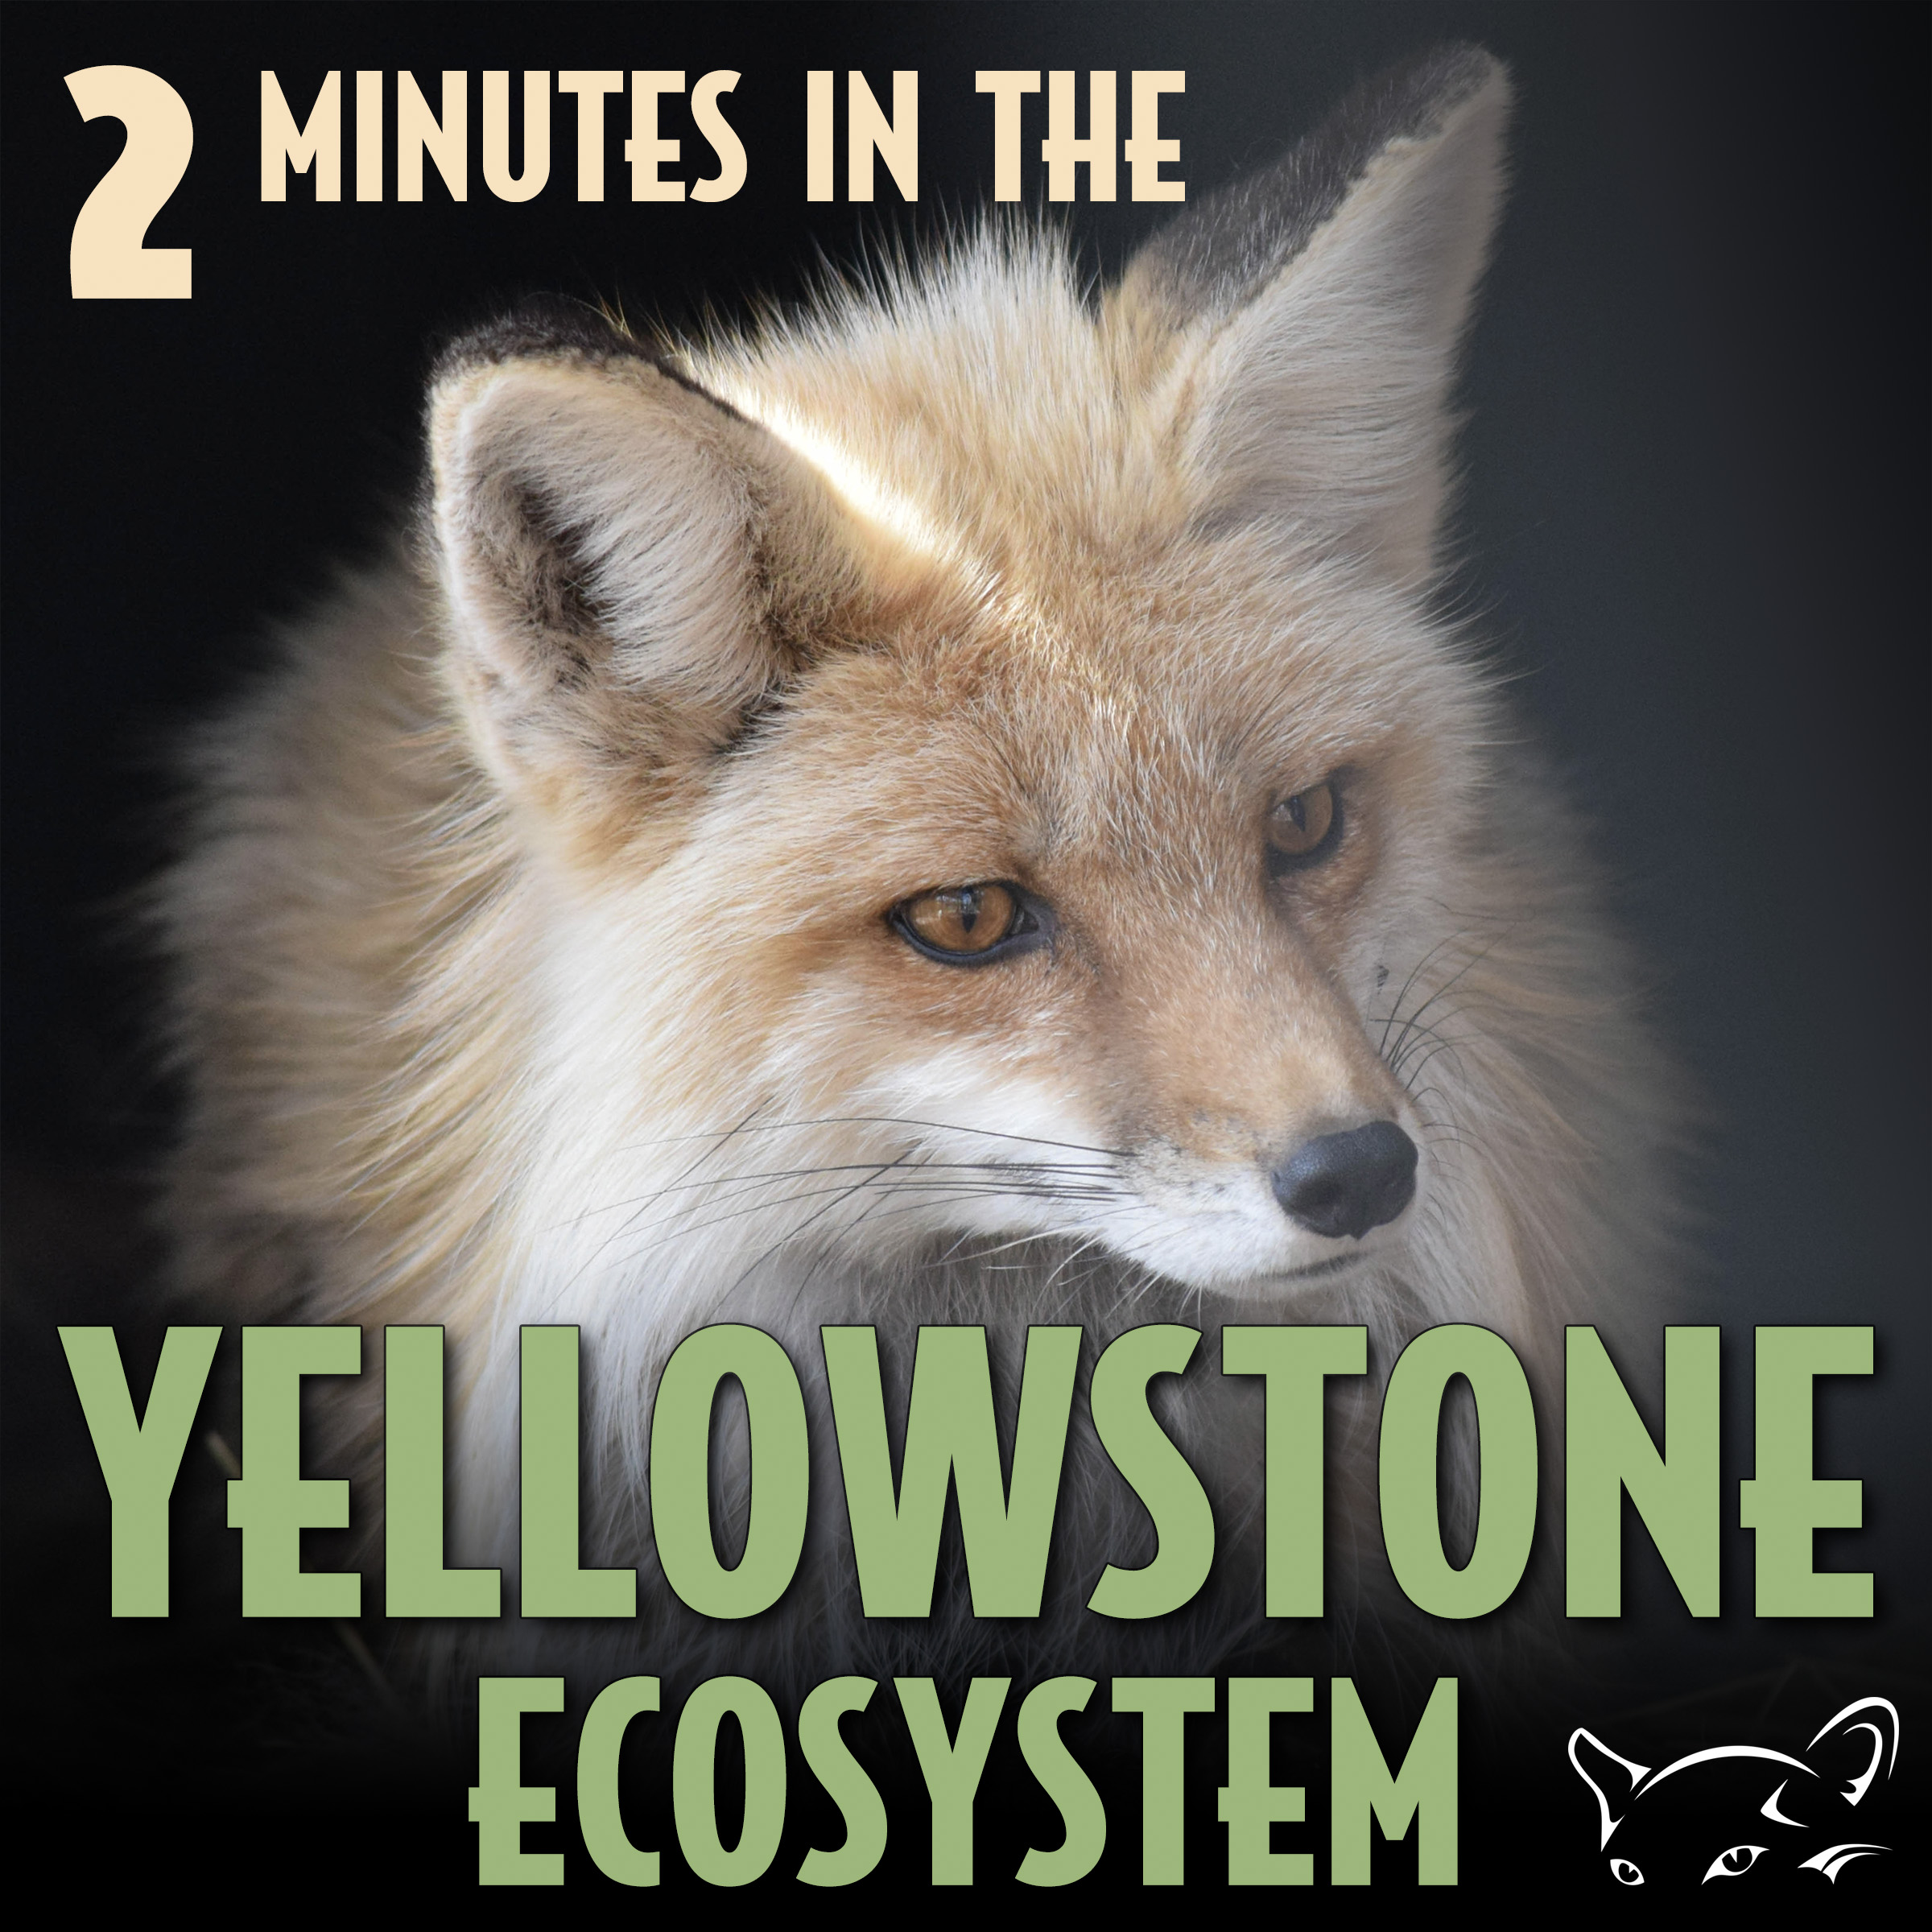 2 Minutes in the Yellowstone Ecosystem